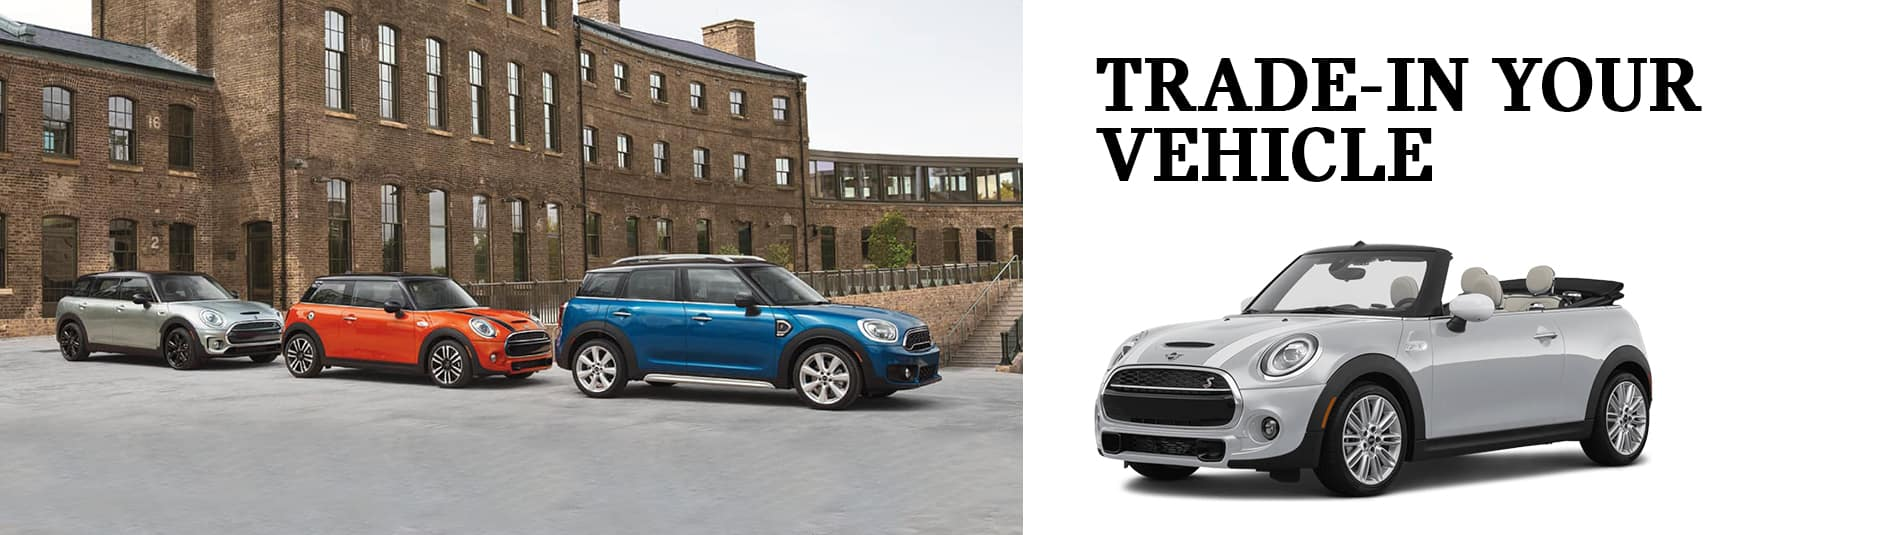 Trade-In Your Vehicle at Patrick MINI in Schaumburg, IL